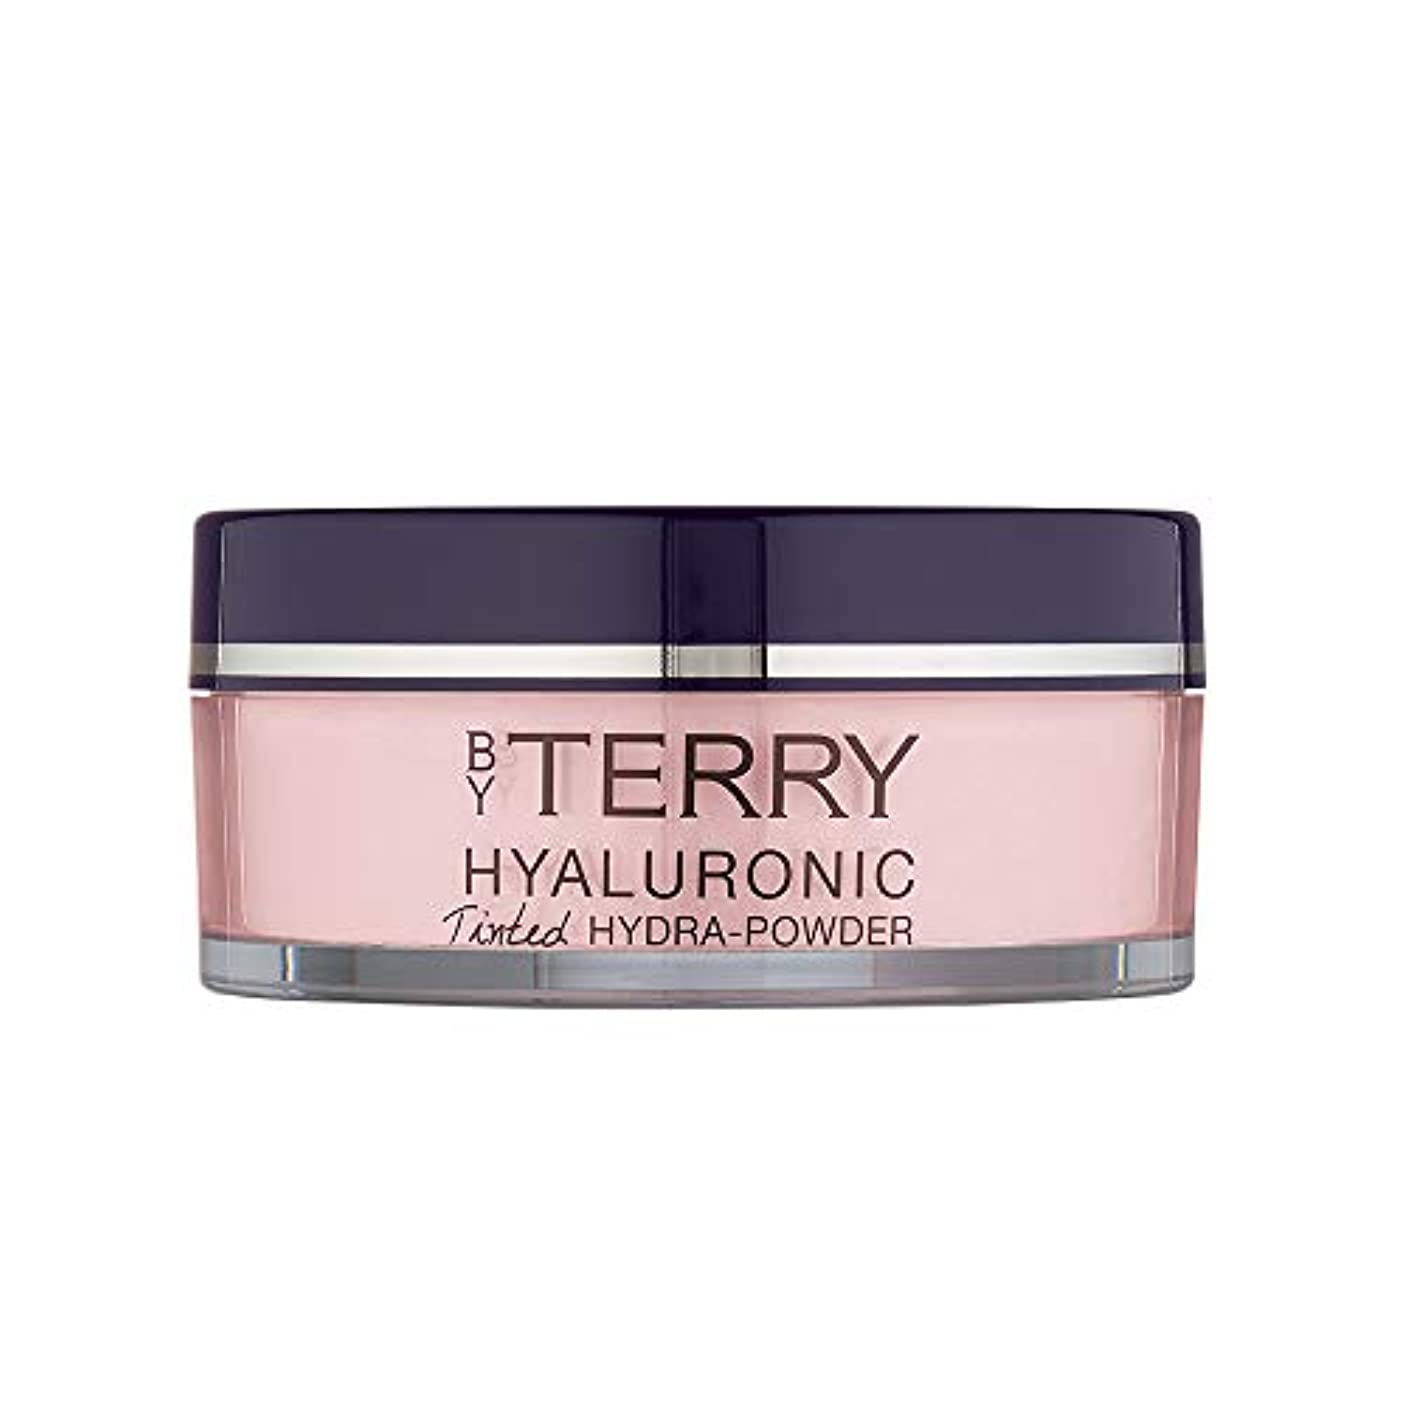 震え要旨欠陥バイテリー Hyaluronic Tinted Hydra Care Setting Powder - # 1 Rosy Light 10g/0.35oz並行輸入品